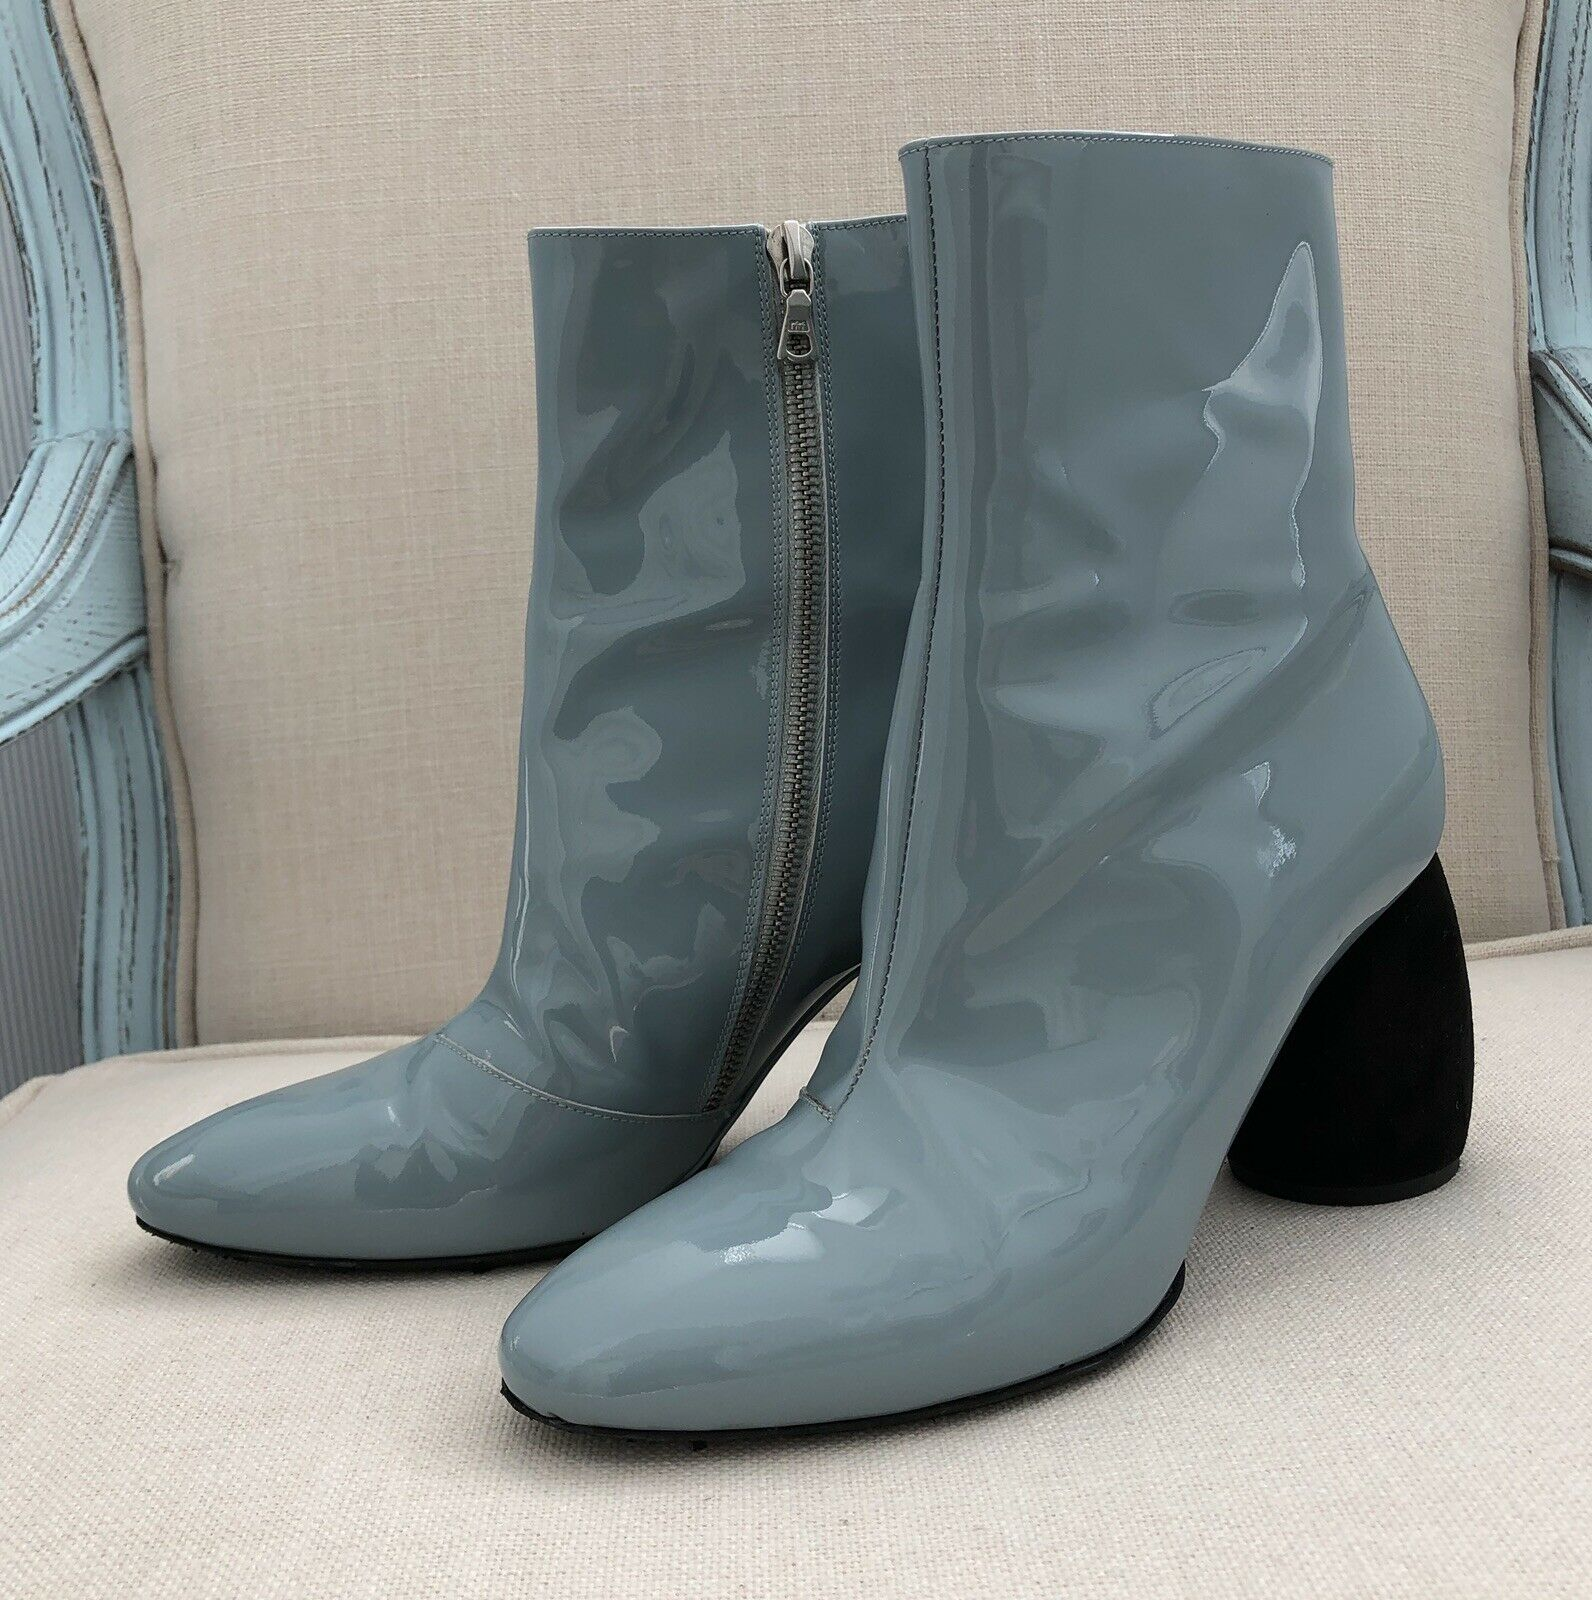 Dries van noten Leather Ankle Boots, Size 39